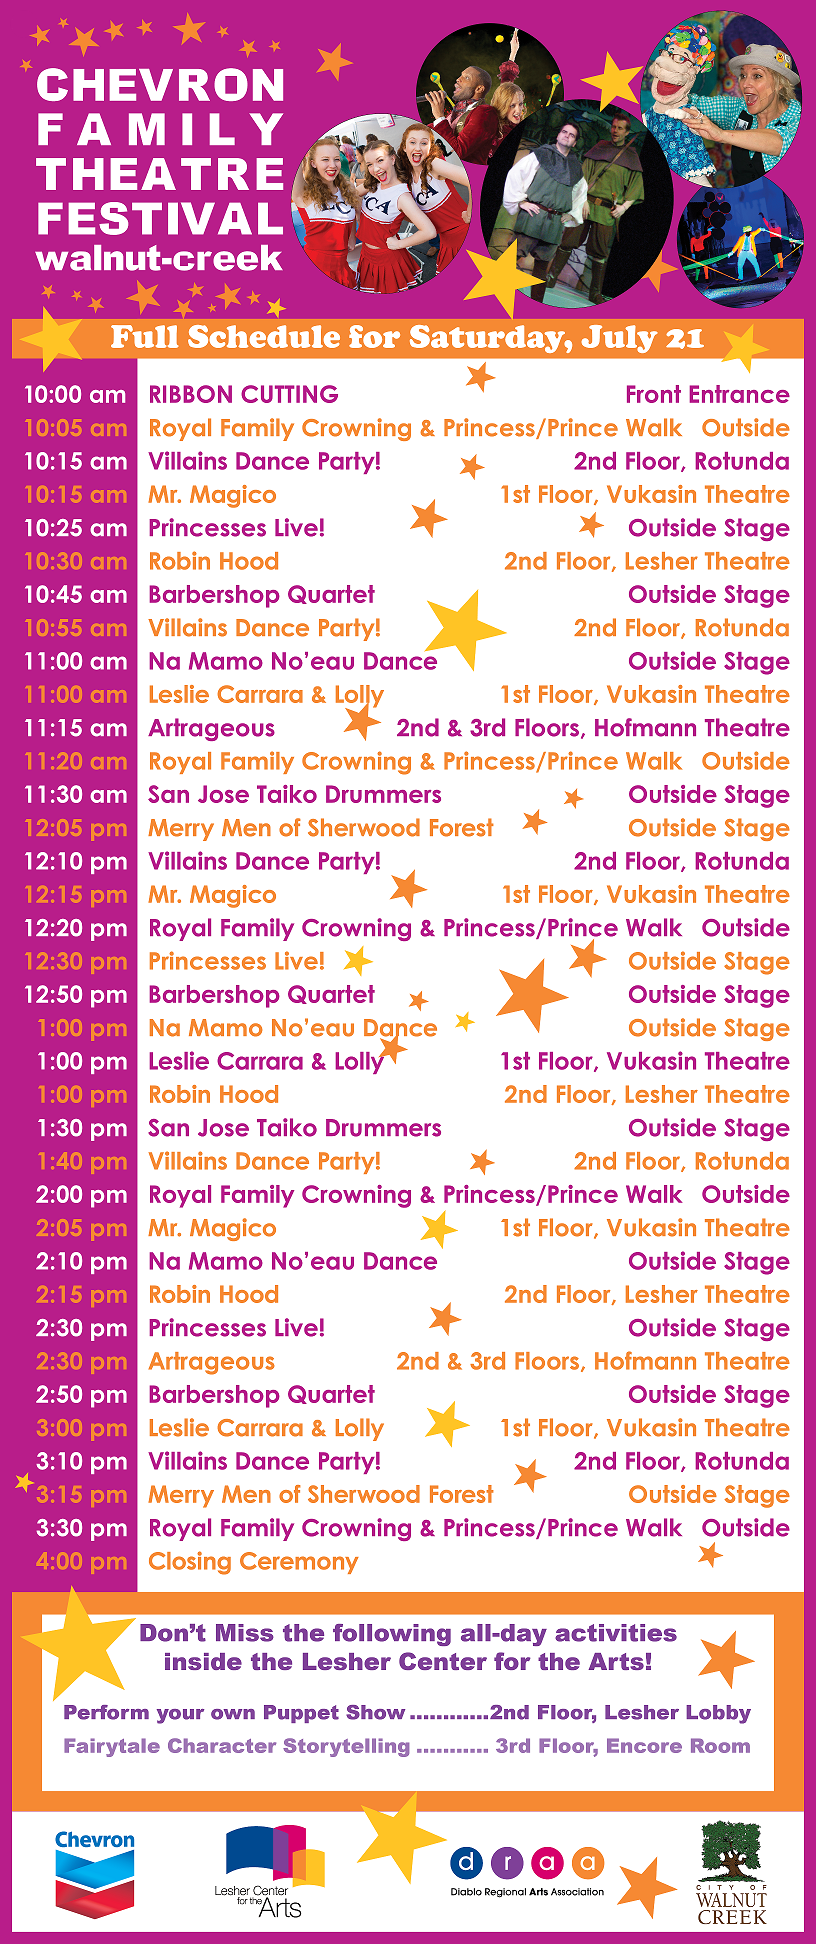 Chevron Family Theatre Festival Schedule